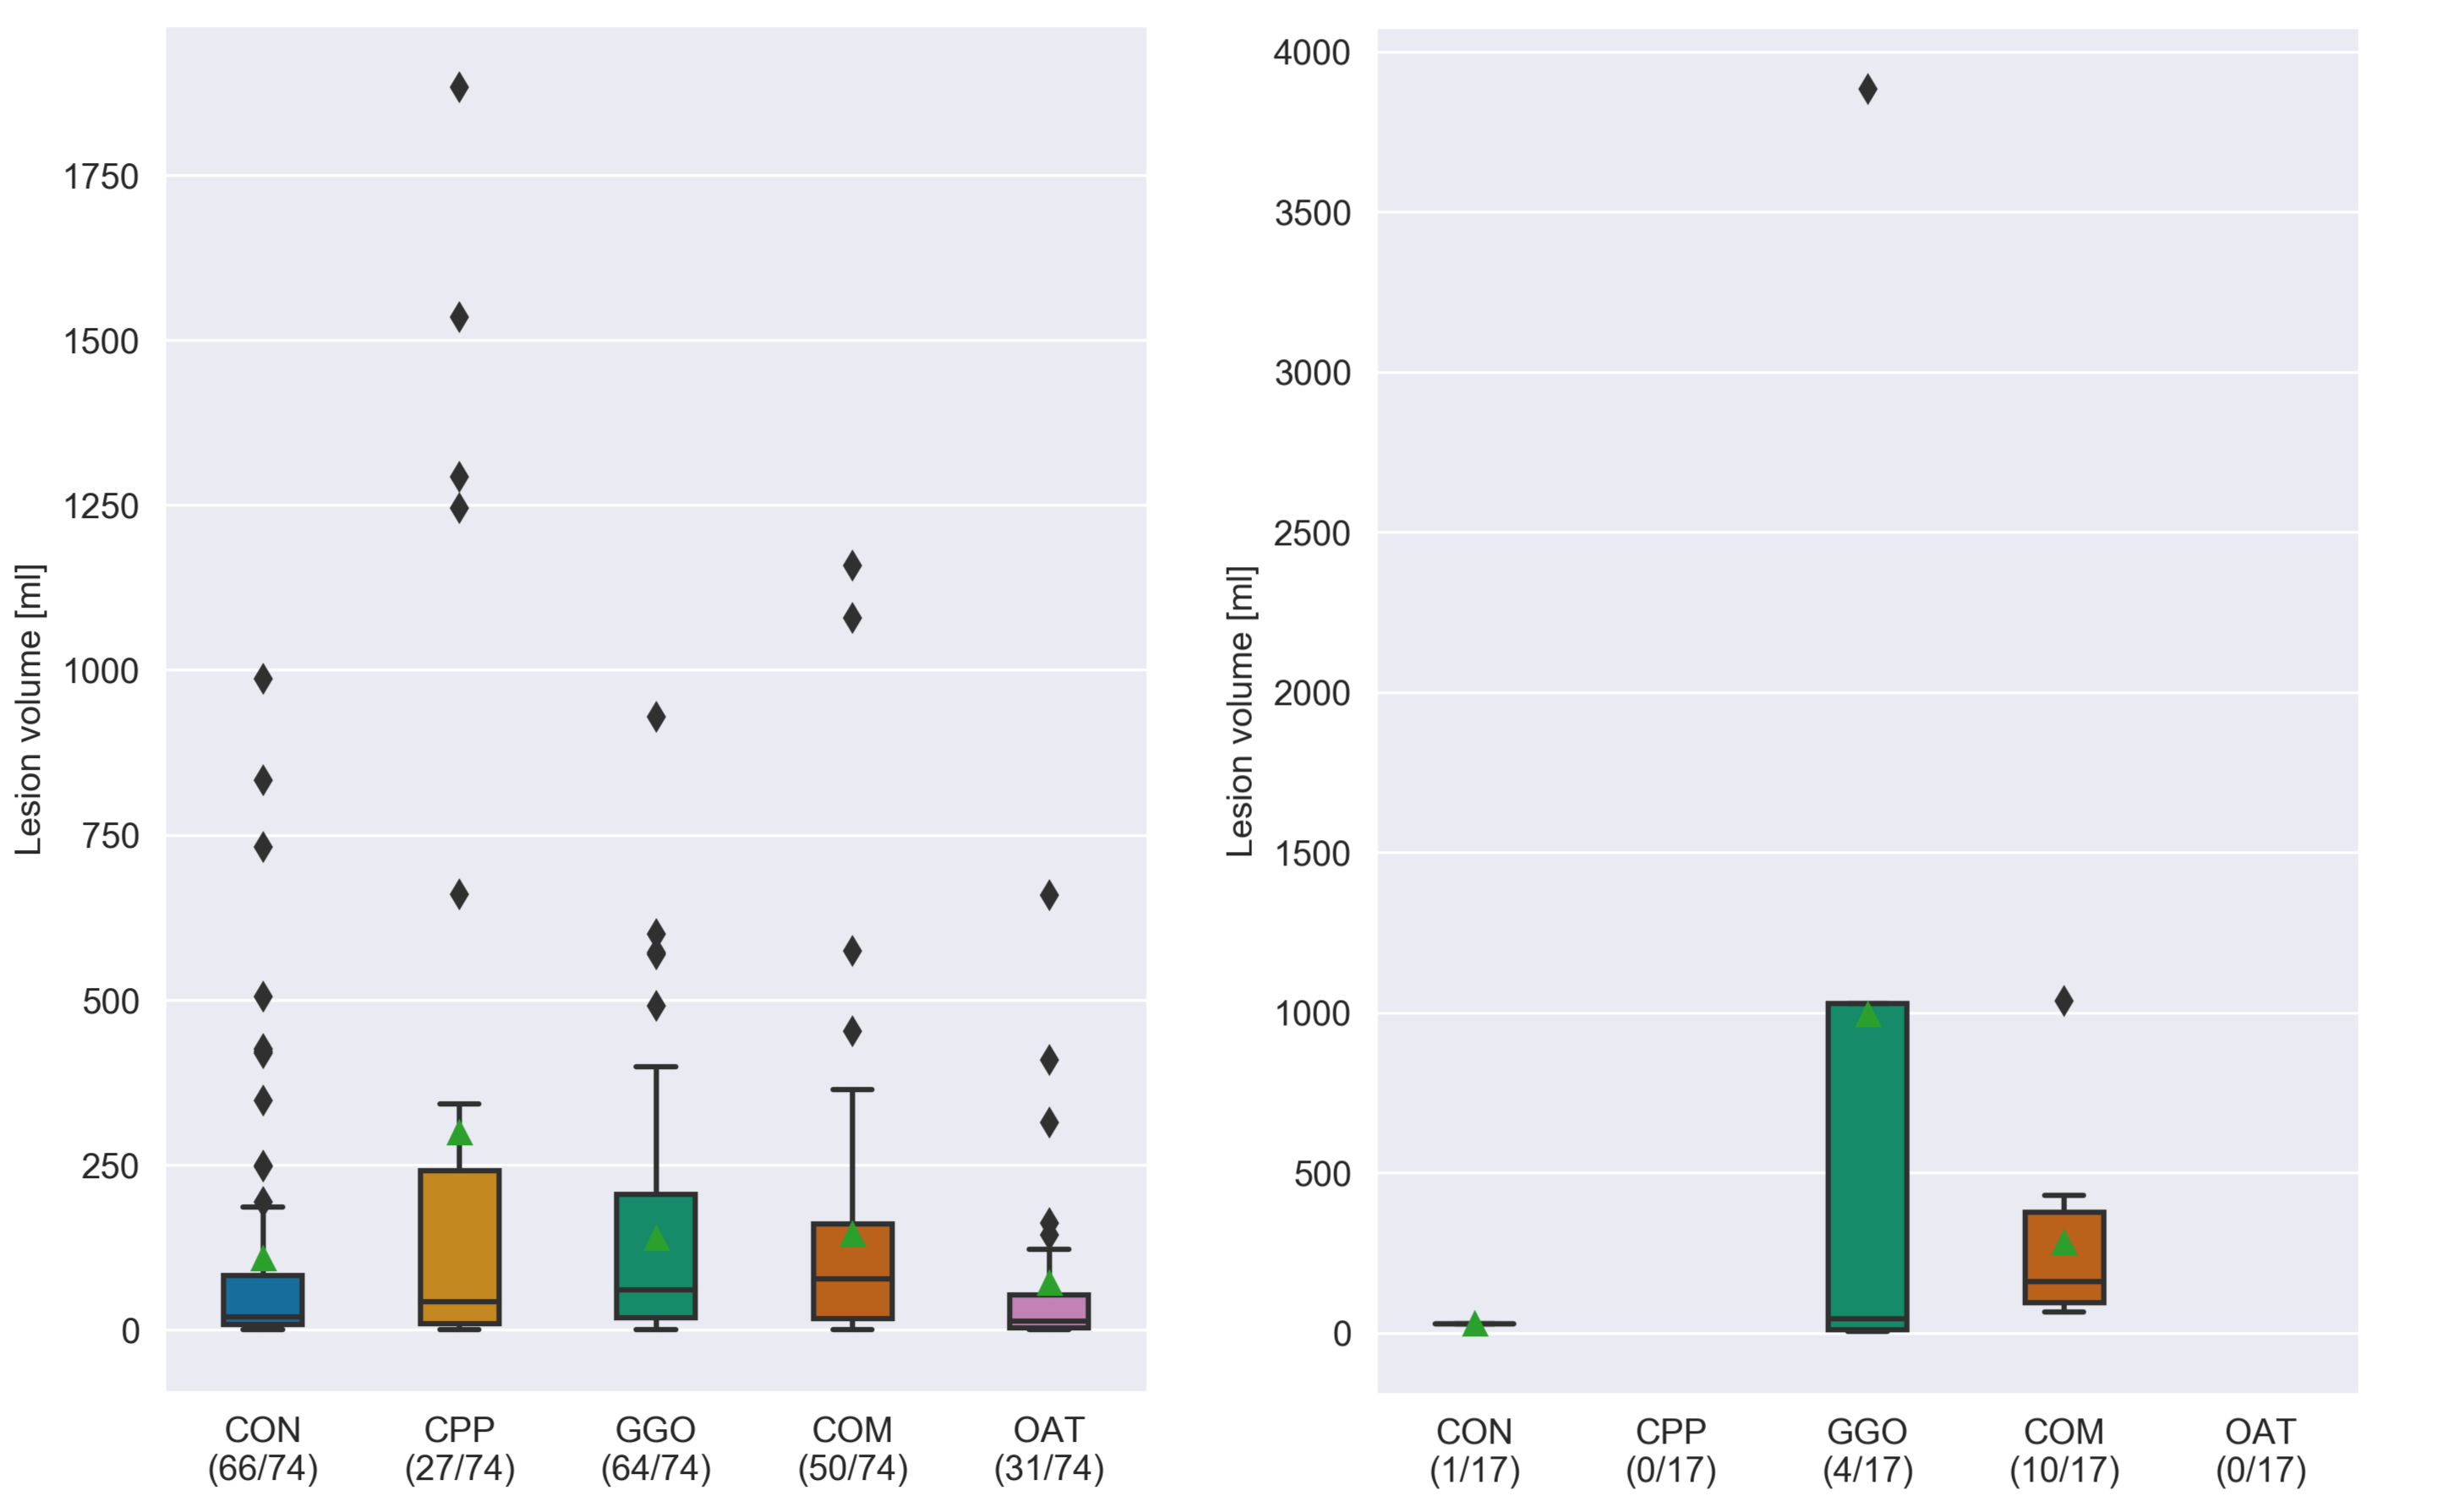 Boxplot of the lesion volumes per type for the validation set (left) and test set (right). Cases with a lesion size of 0ml are discarded. Under each lesion type, the number of cases with such a lesion with respect to the total number of cases is indicated. The mean volumes are shown with a green triangle.